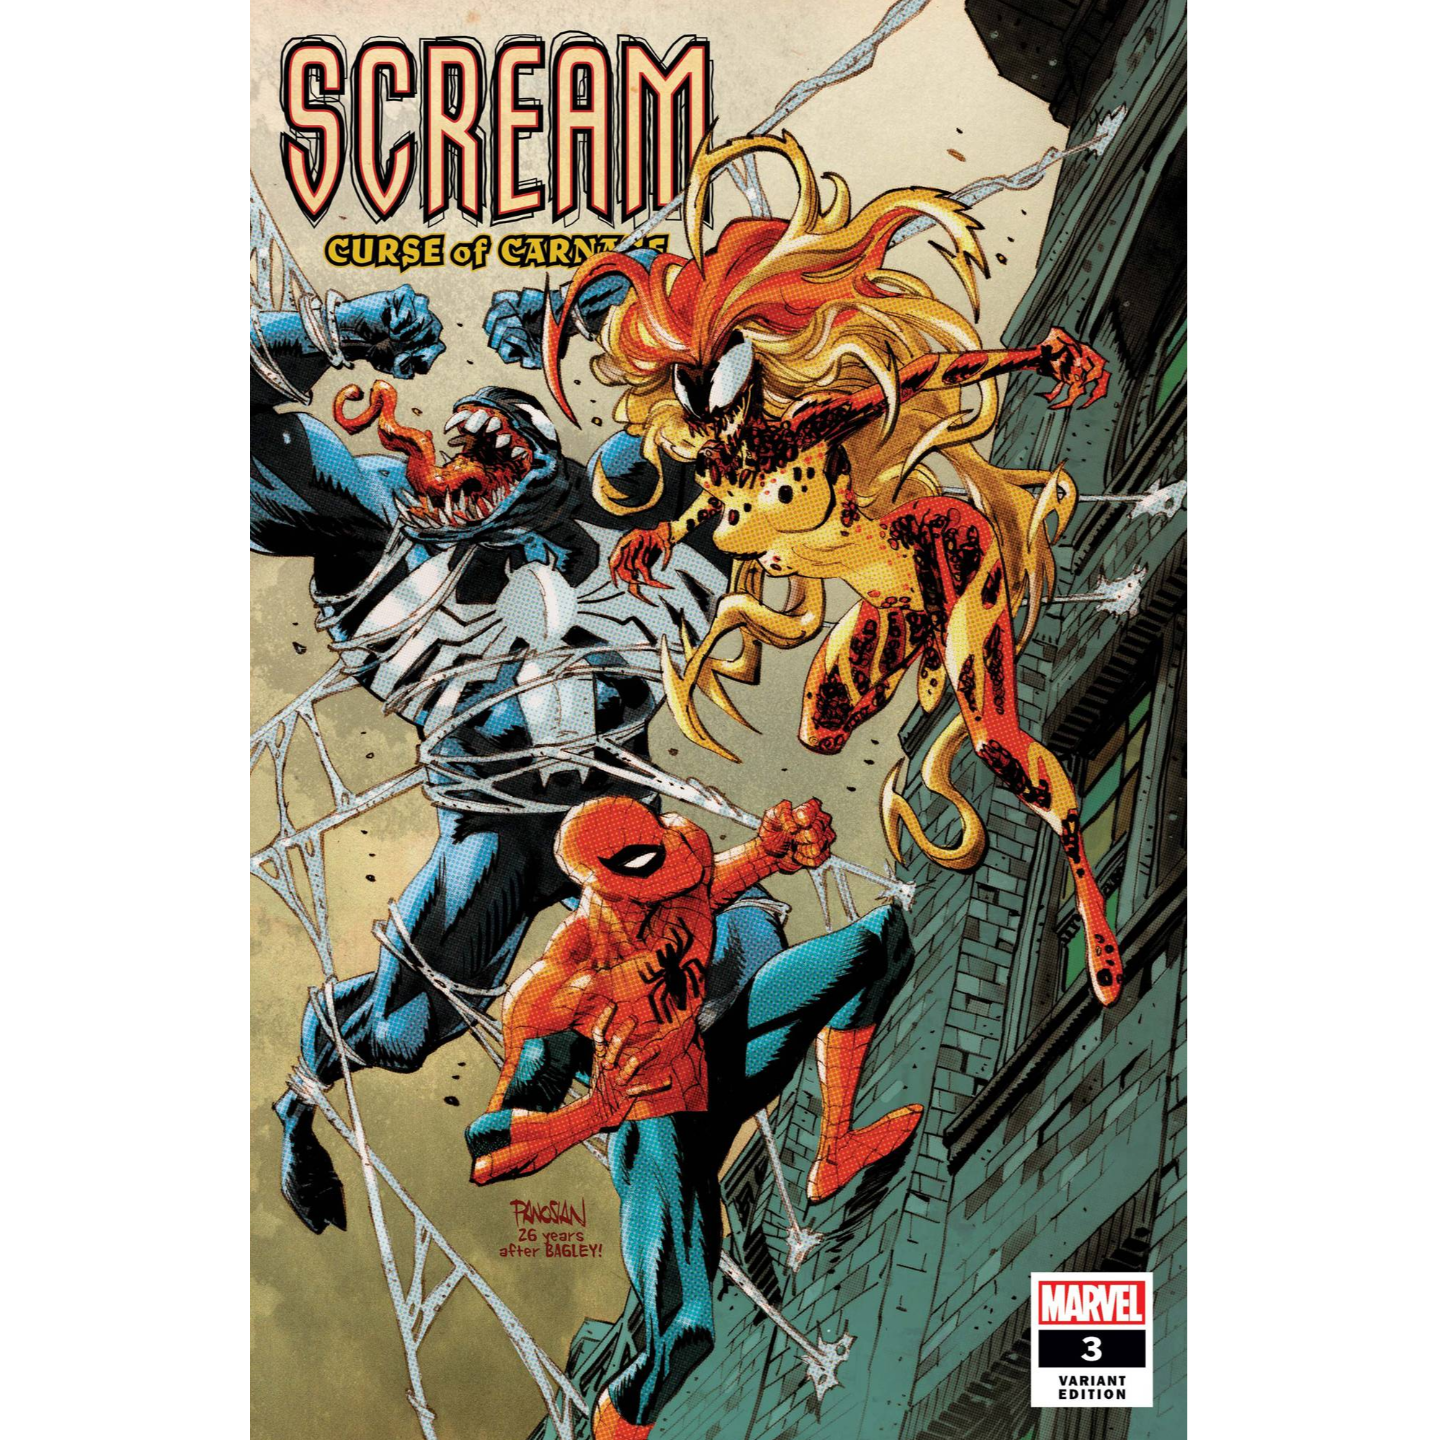 SCREAM: CURSE OF CARNAGE #3 - PANOSIAN VAR